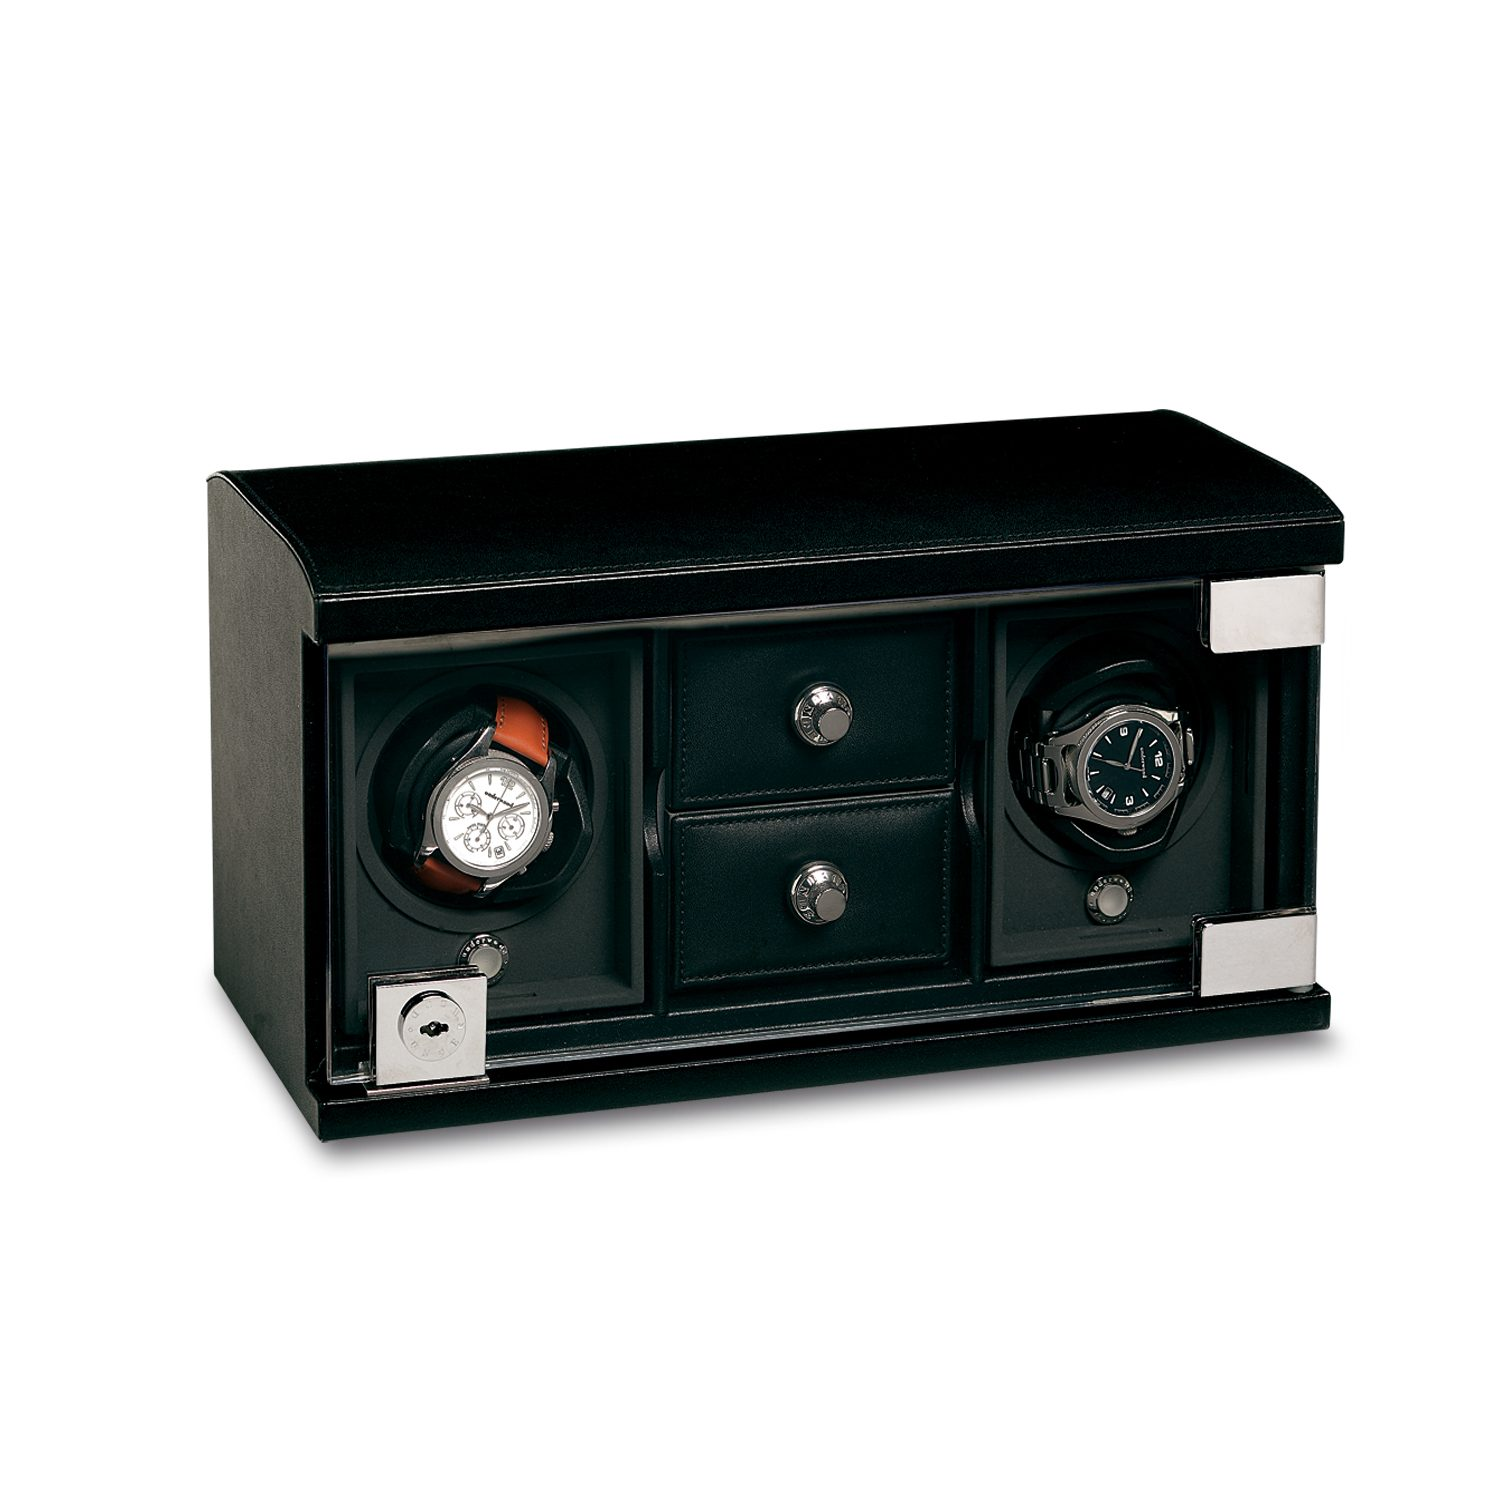 Watch-Winder-for-2-watches-with-trays